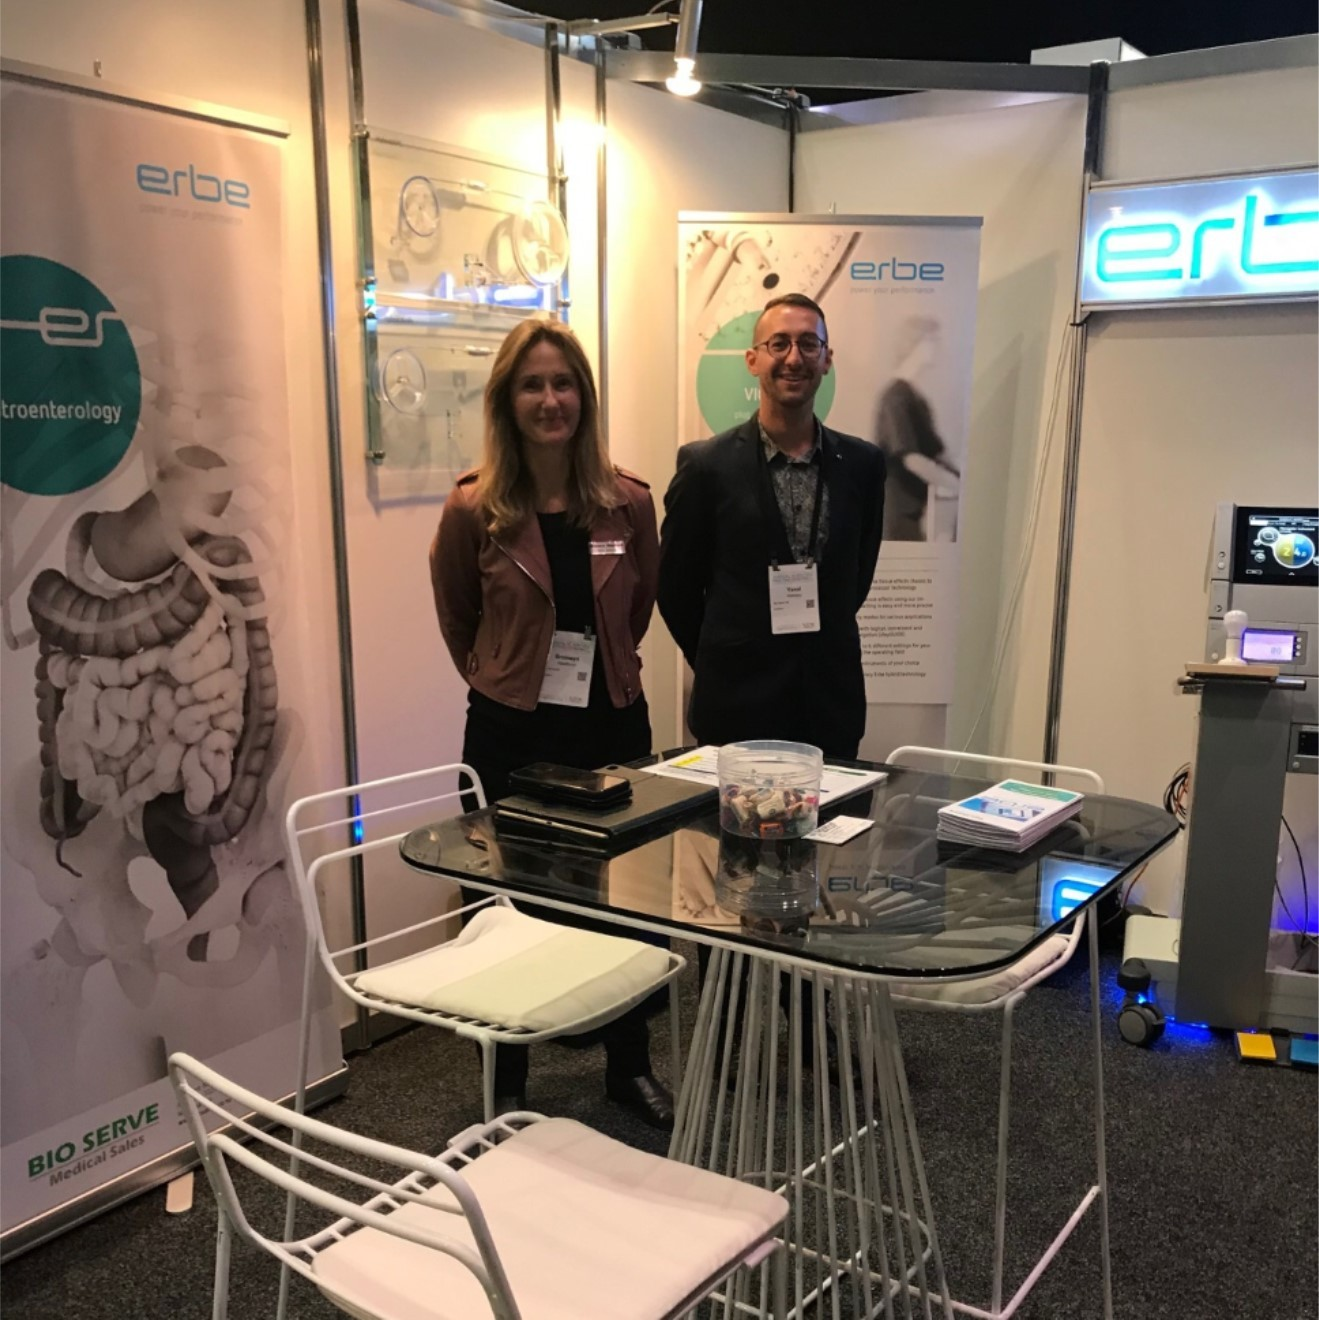 Gastroenterology Conference 2019. Thank you for visiting our stand!